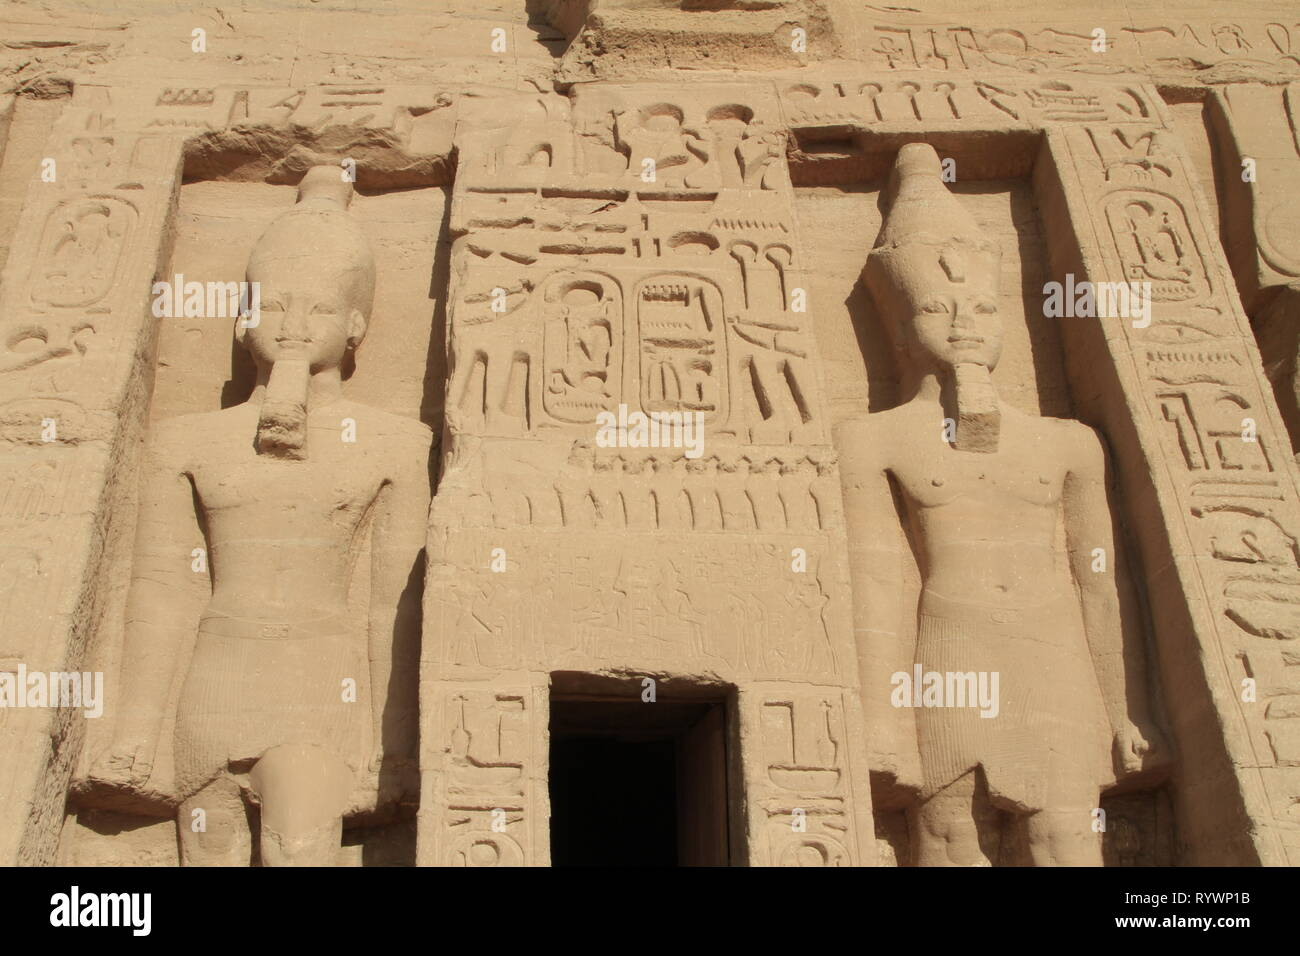 The Small Temple of Hathor and Nefertari, Abu Simbel, Nubia, Upper Egypt, North Africa, Middle East Stock Photo